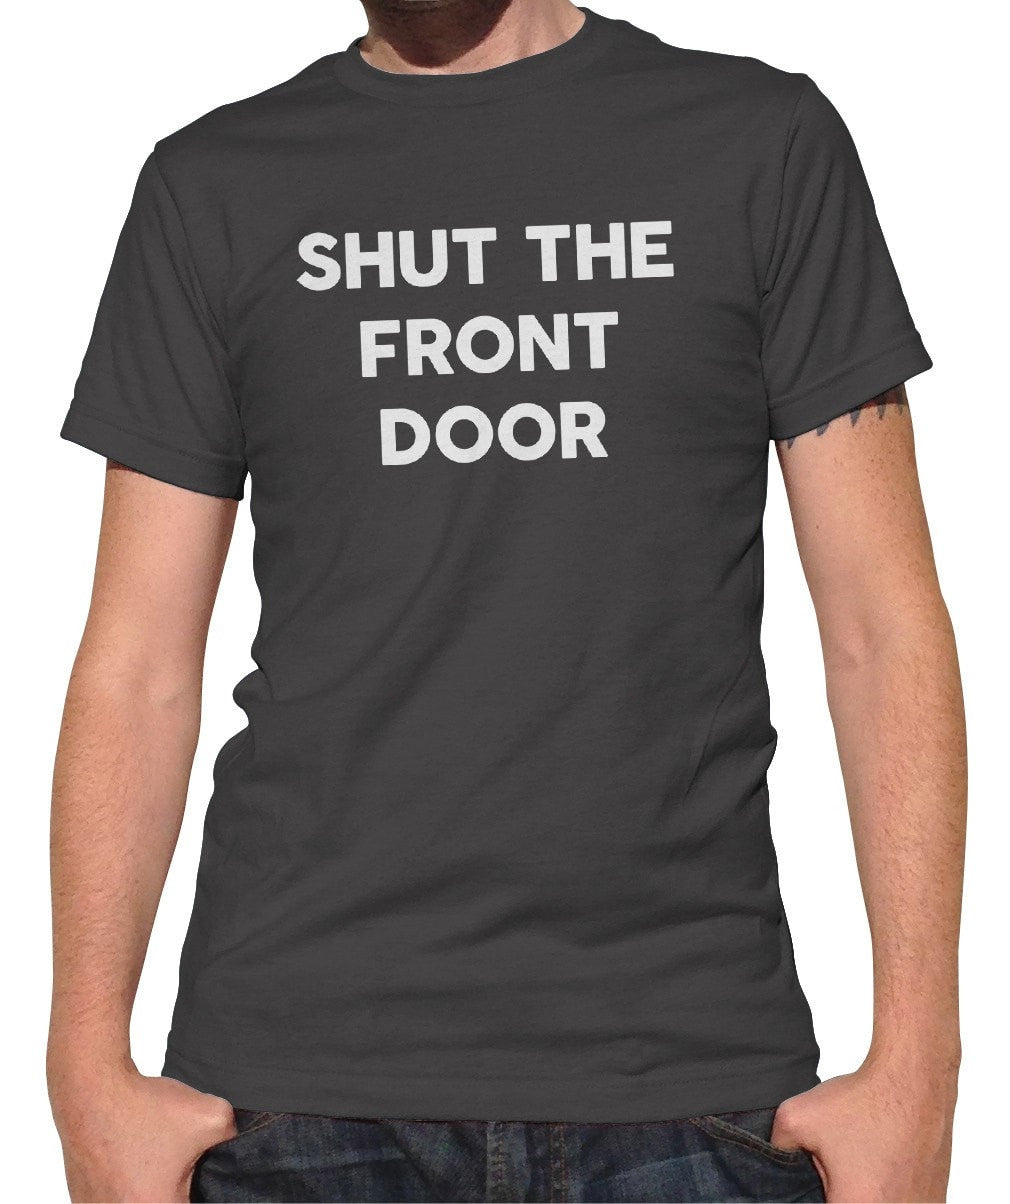 Men's Shut The Front Door T-Shirt Southern Slang Shirt